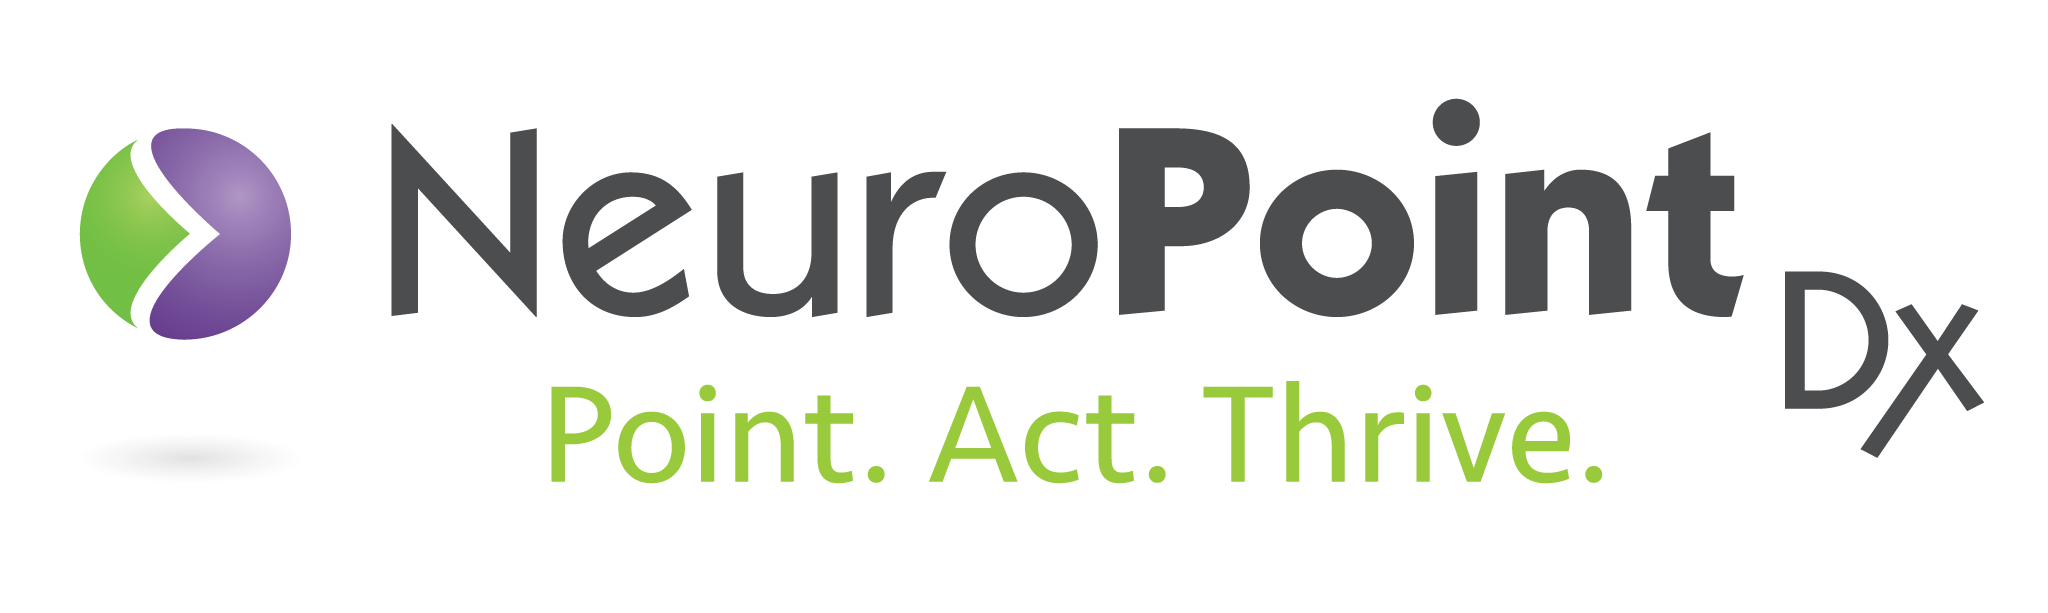 NeuroPointDX Announces Commercialization of First Objective Blood Test to Aid Earlier Diagnosis of Autism Spectrum Disorder